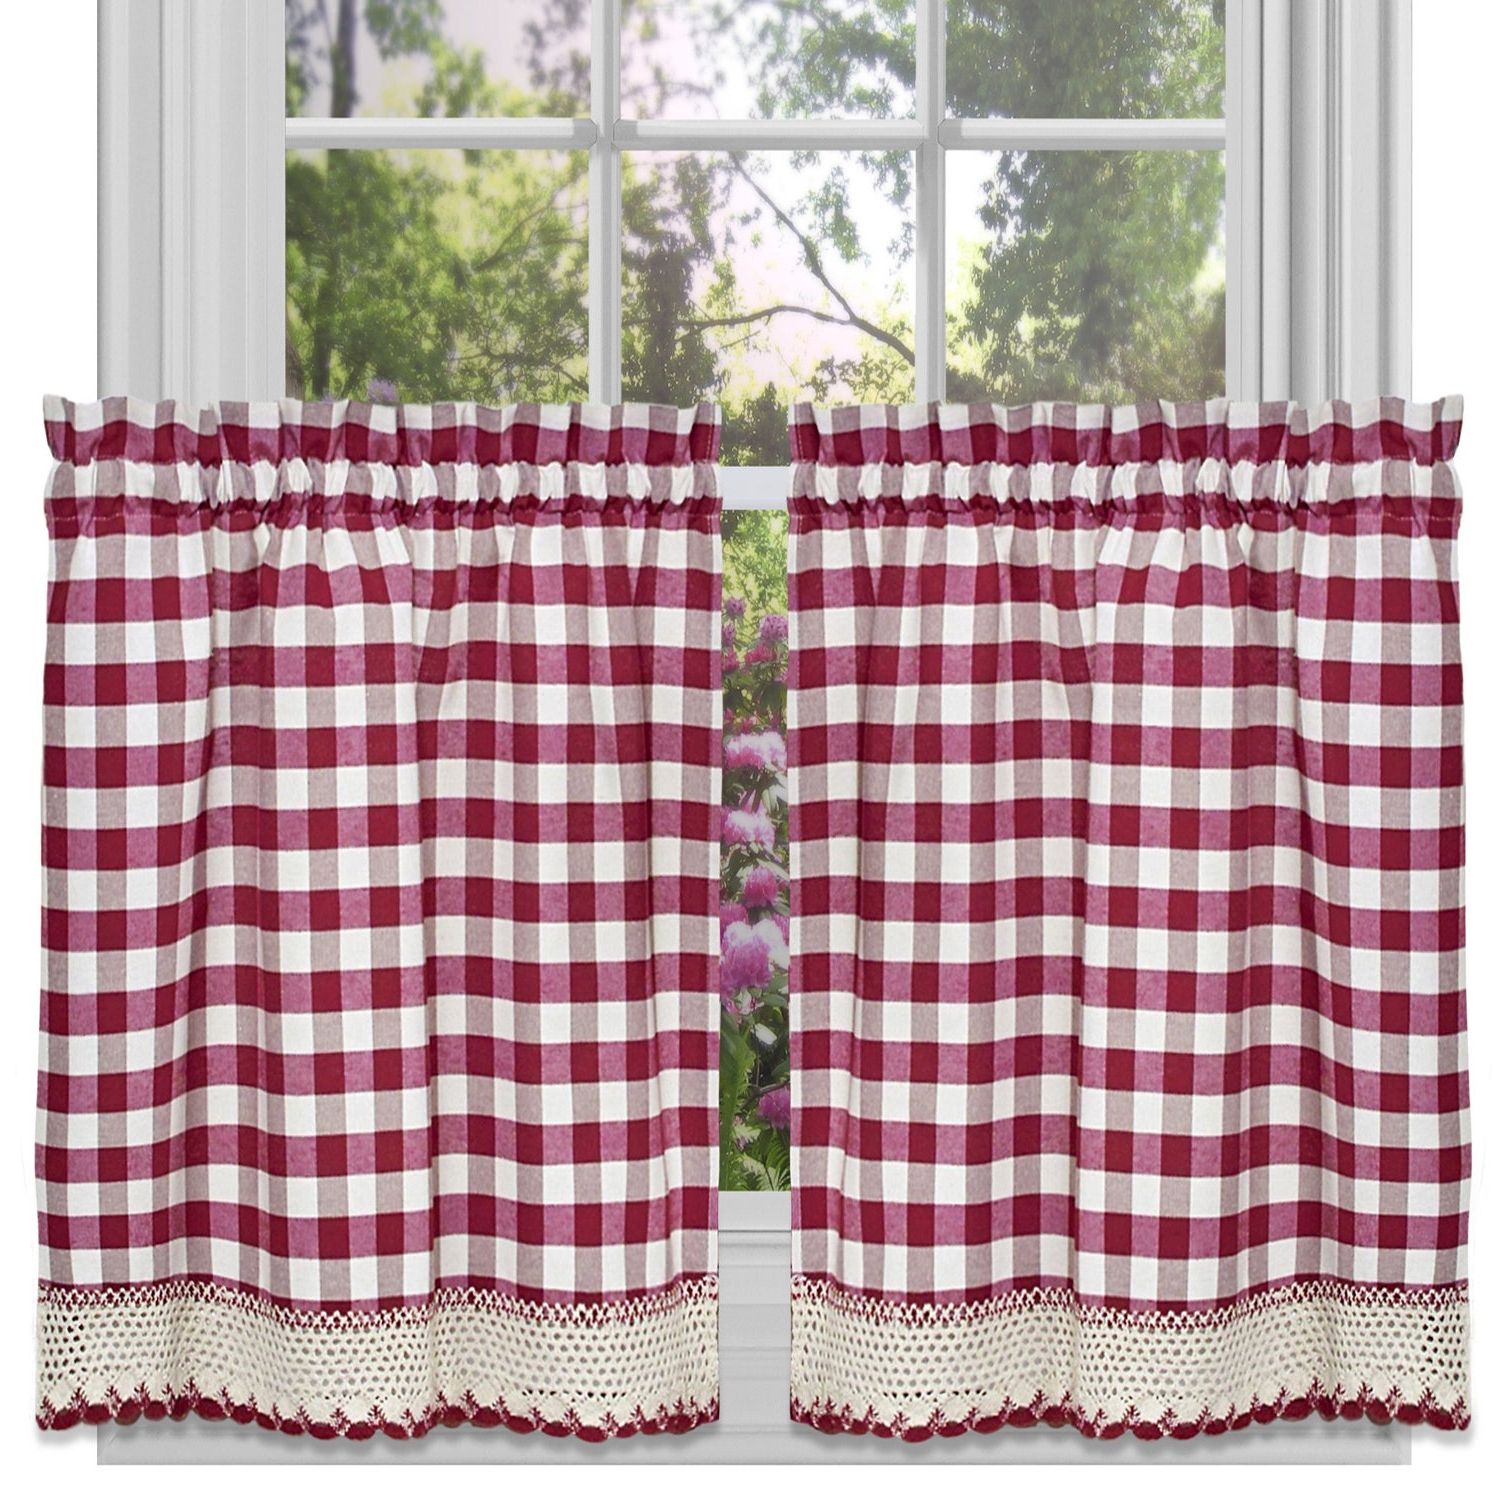 Trendy Kitchen Burgundy/white Curtain Sets Pertaining To Classic Buffalo Check Kitchen Burgundy/white Curtain Set Or Separates (View 3 of 20)